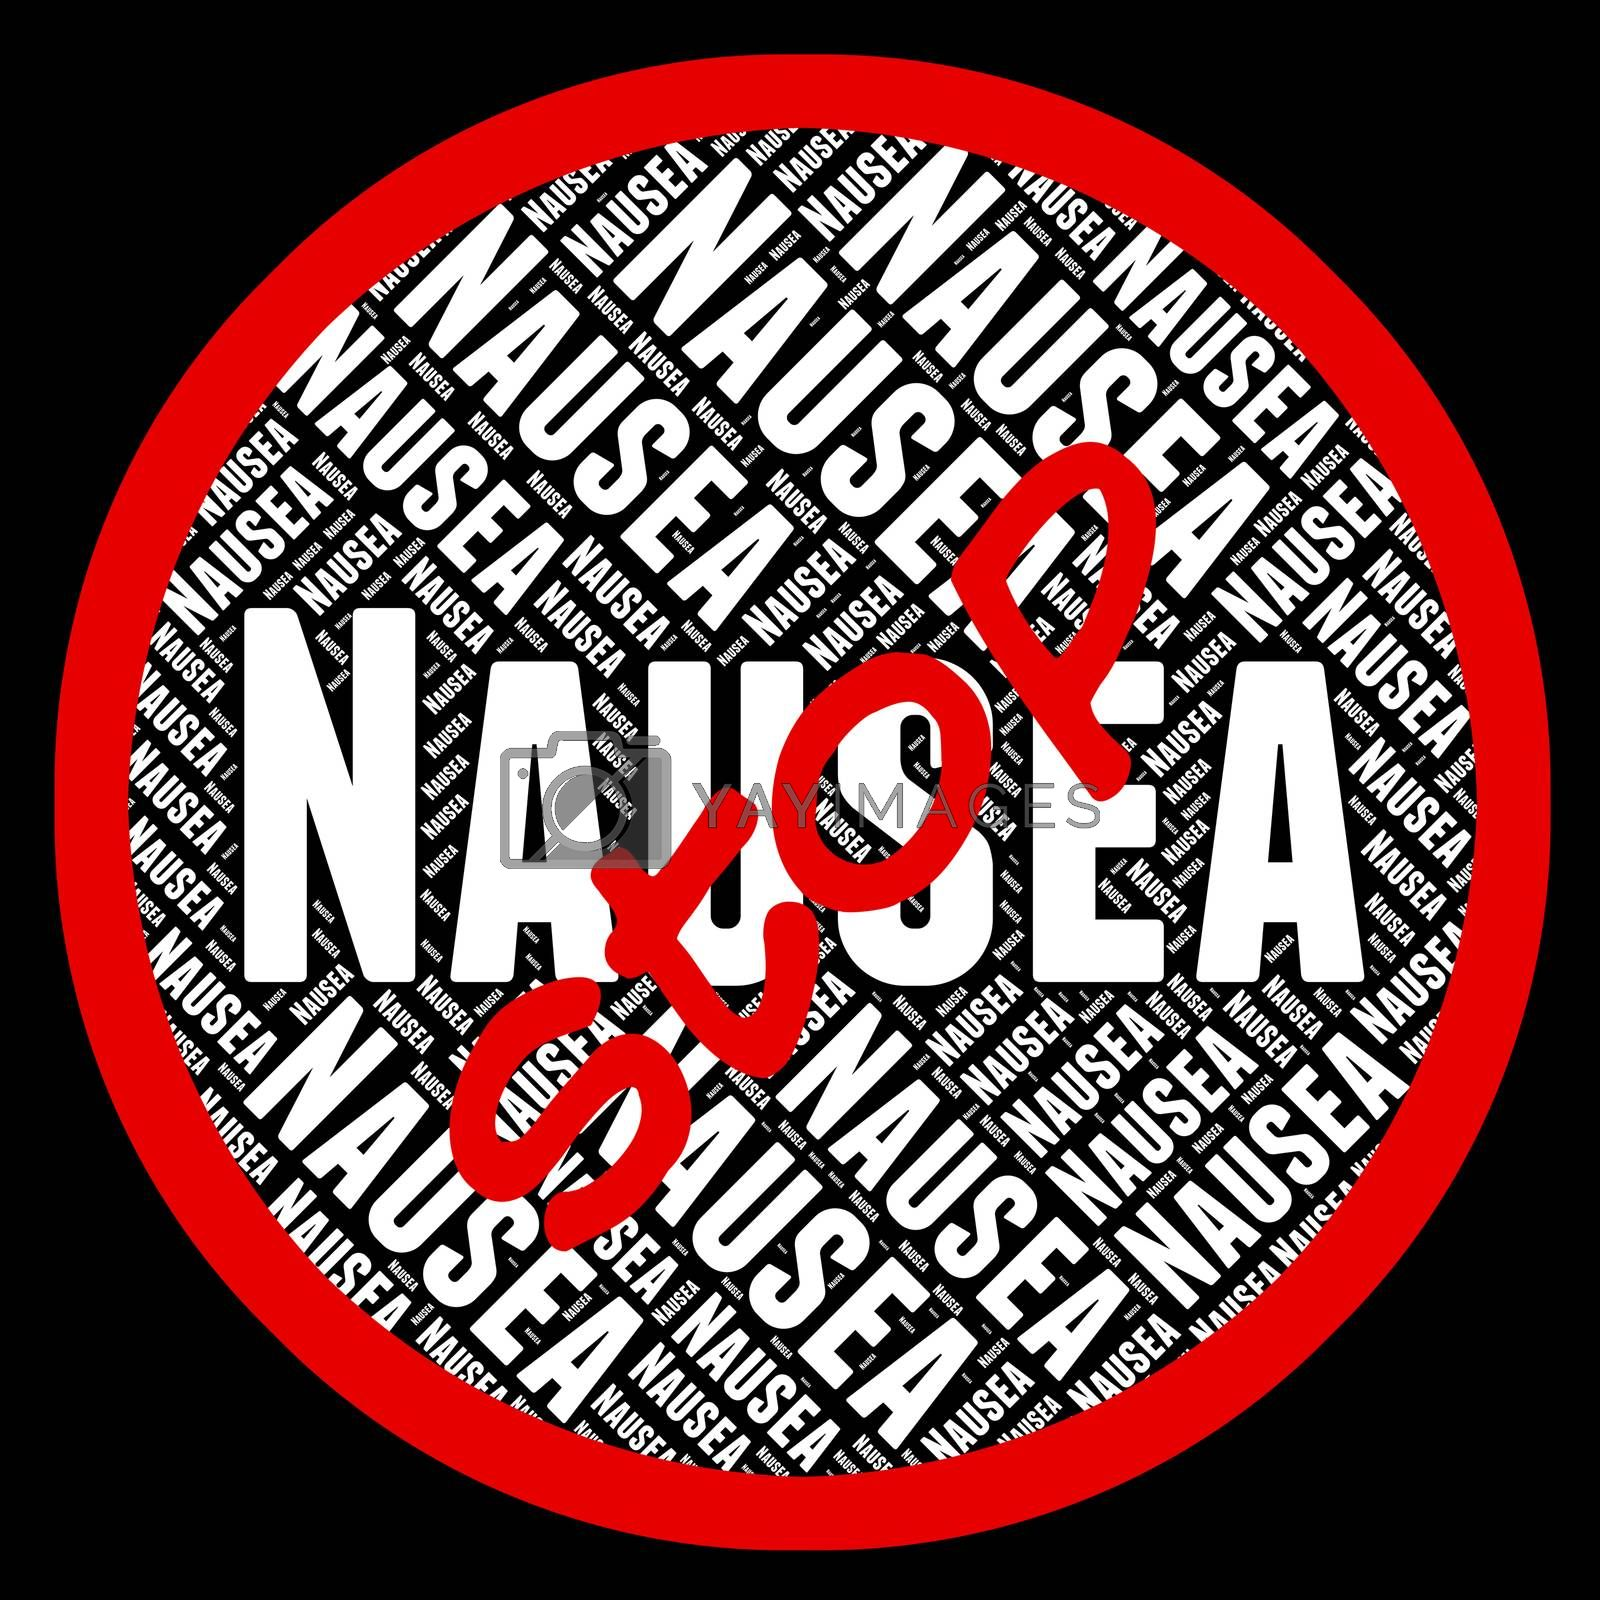 Stop Nausea Showing Motion Sickness And Prohibit